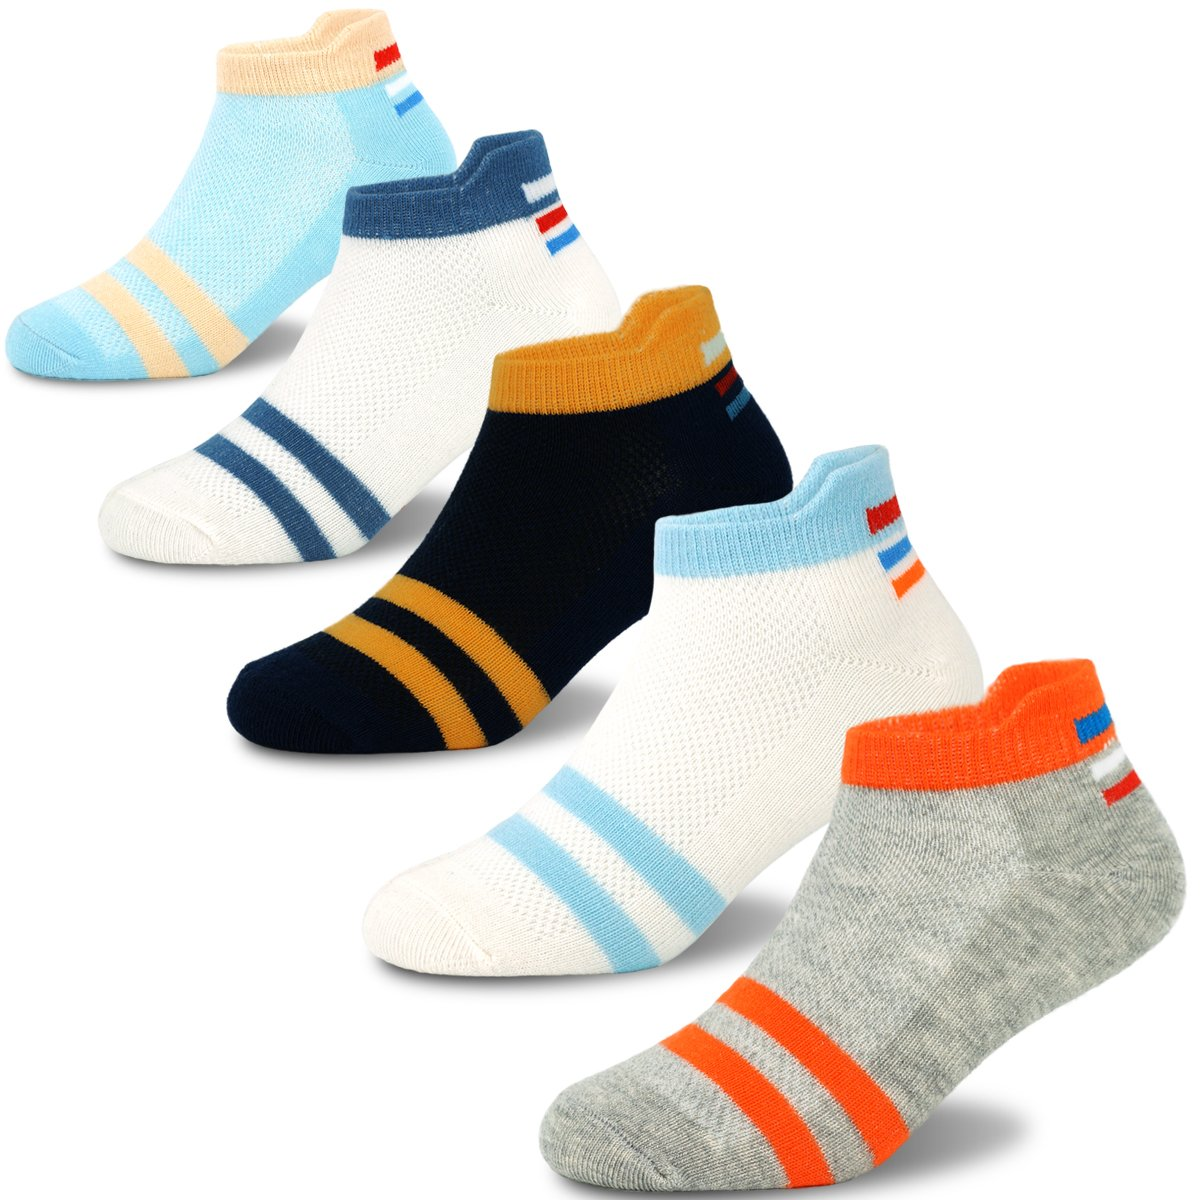 Toddler Boys Low Cut Cotton Atheletic Socks Breathable Short Socks for Kids 5 Pack 1-3T